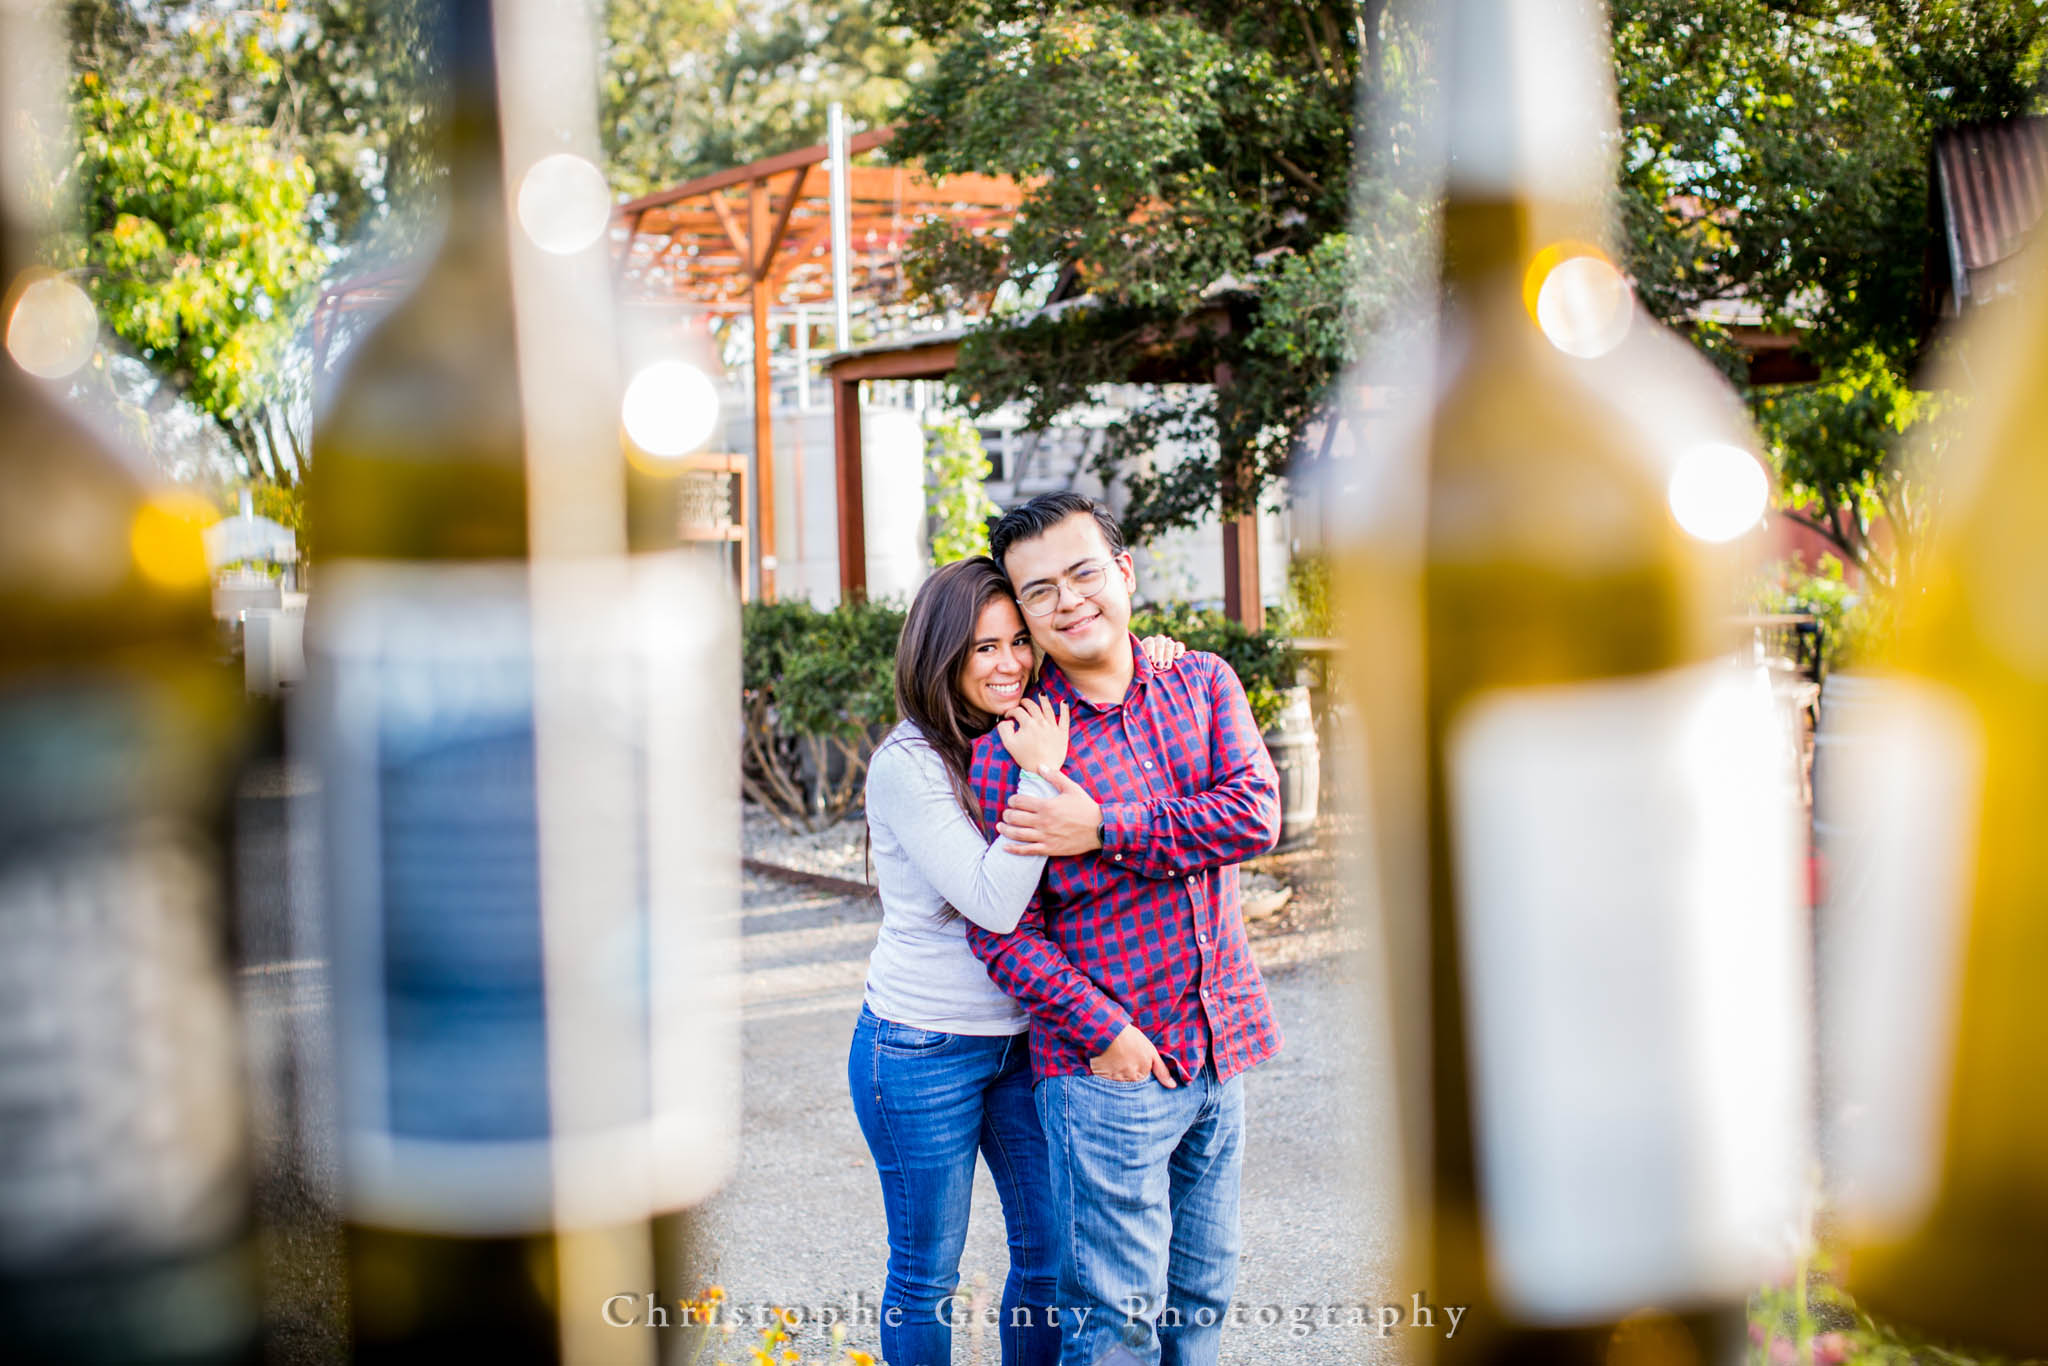 TudalWinery-Marriage-Proposal-Photography-128